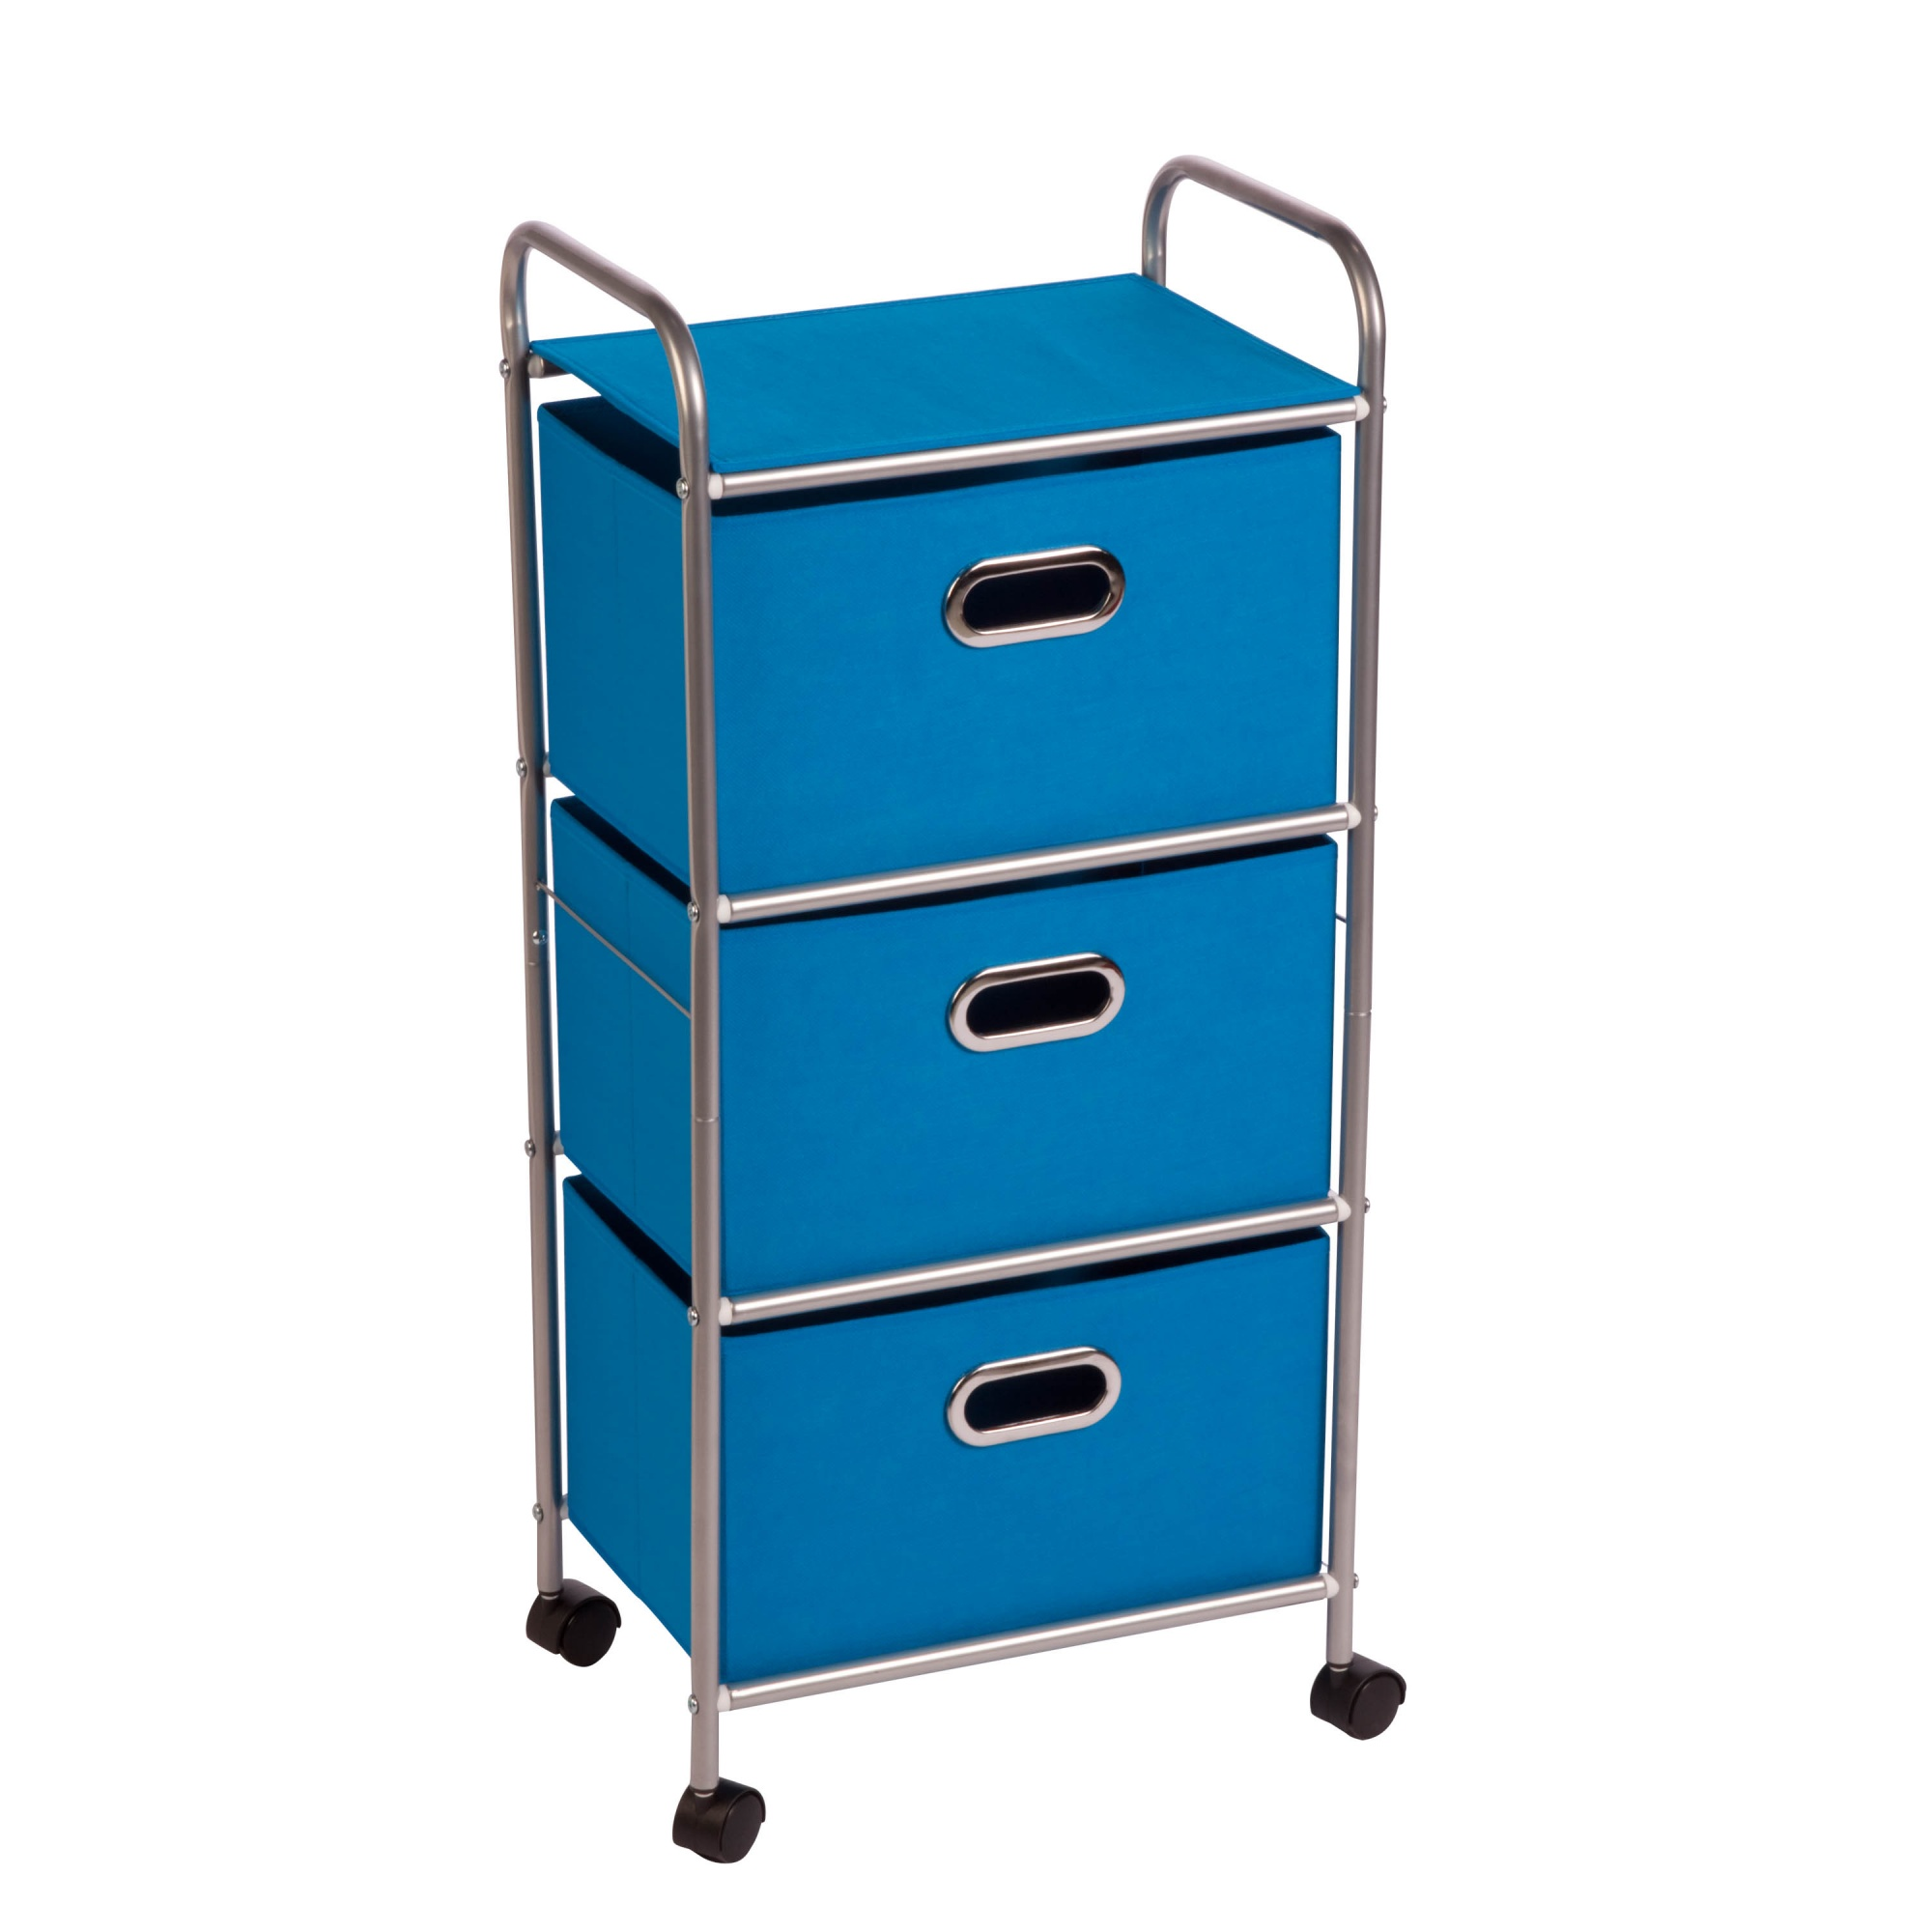 Fabric Drawers Homeware: Buy Online from Fishpond.co.nz